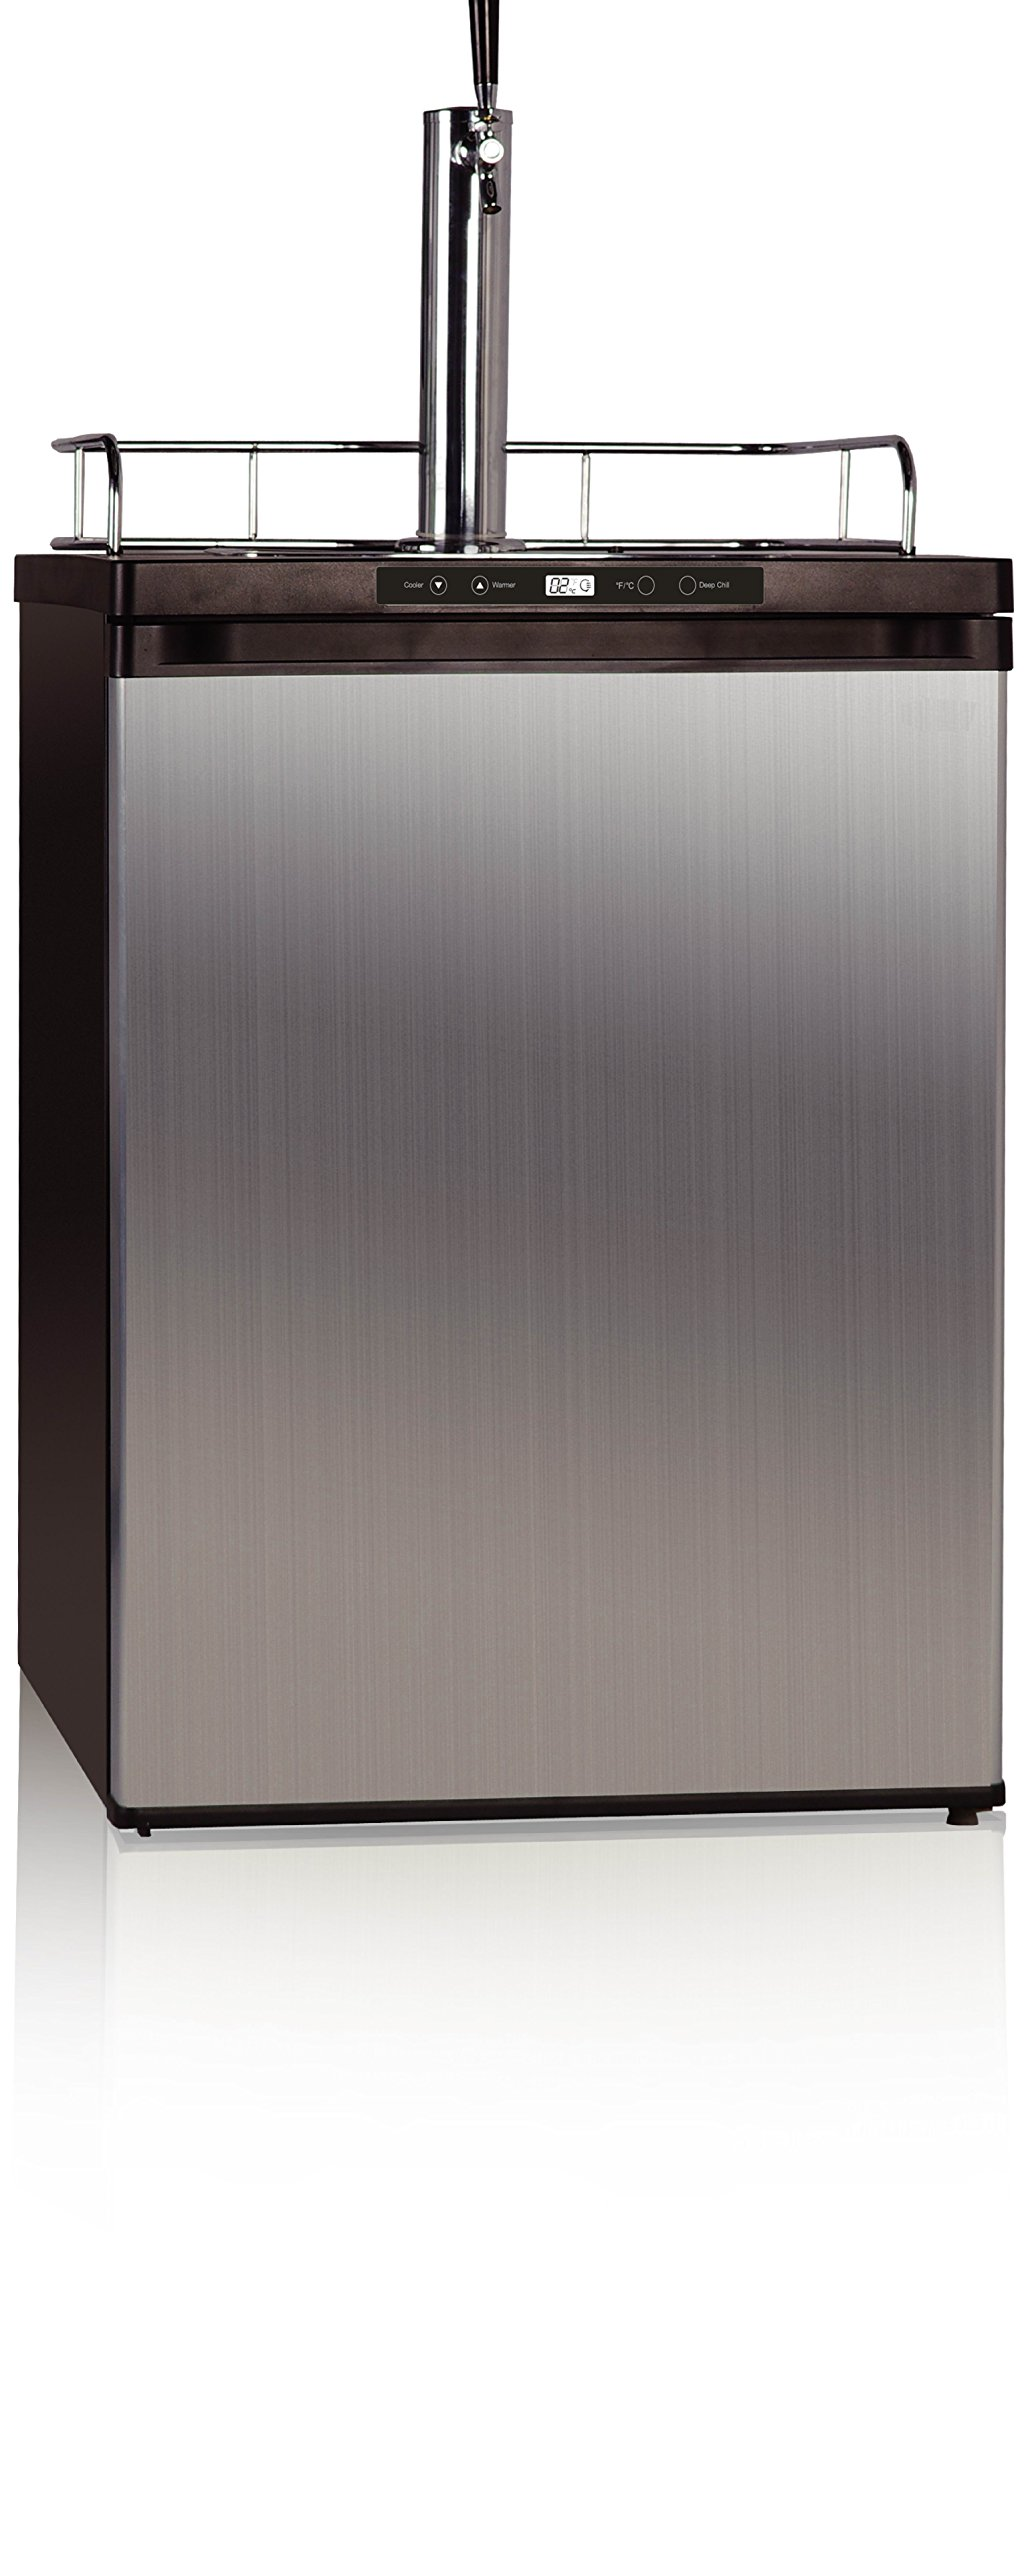 midea HS-209BESS Beer/Beverage Refrigerator and Dispenser, 5.7 Cubic Feet, Stainless Steel by MIDEA